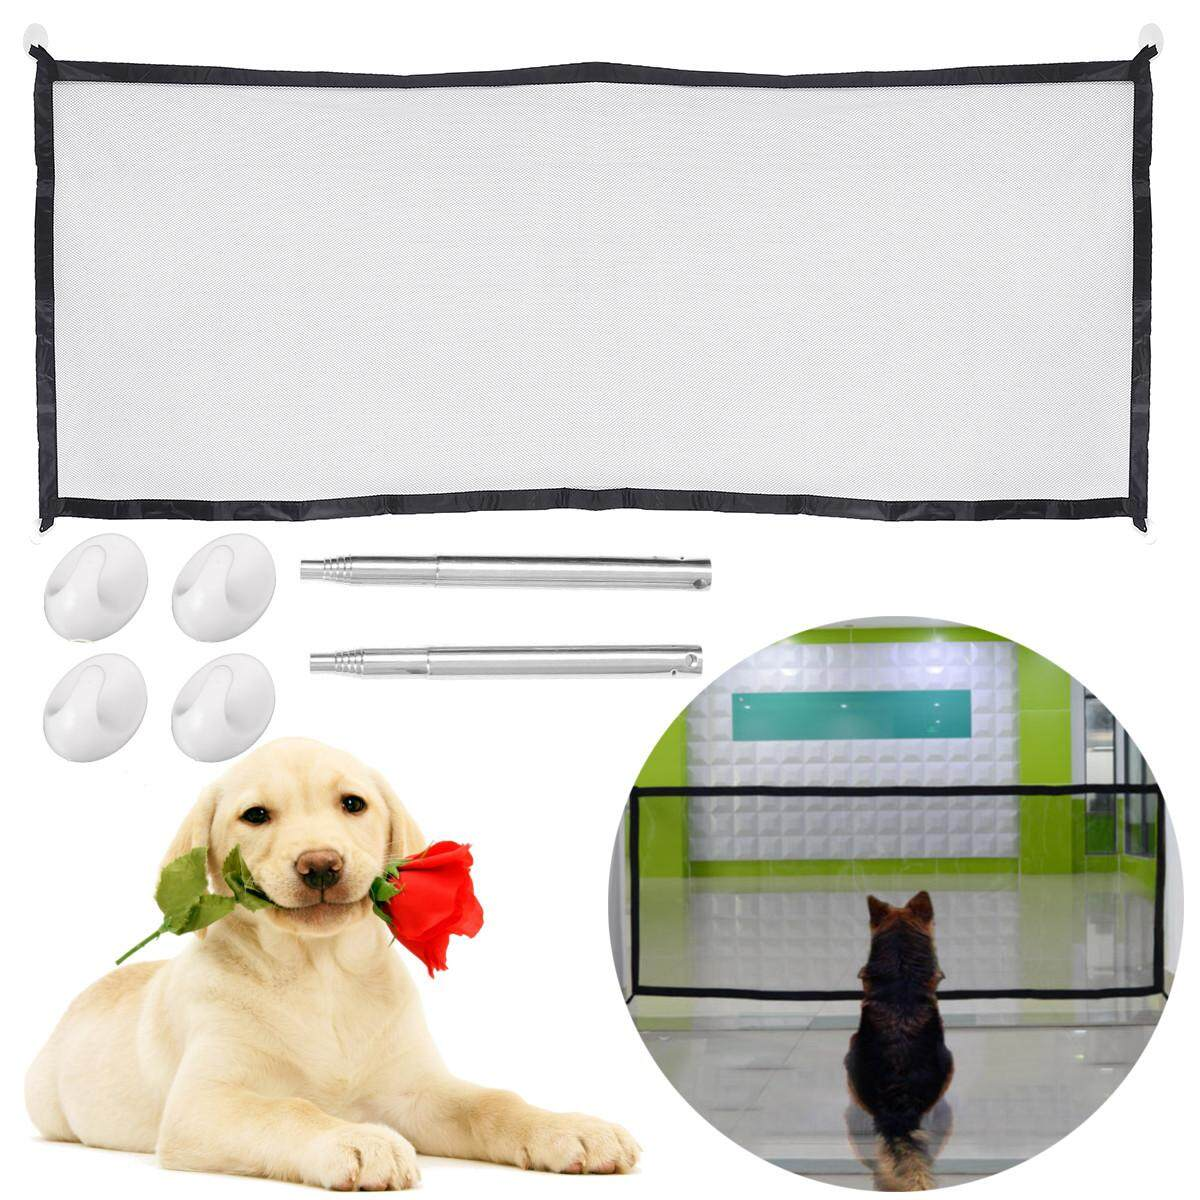 Portable Folding Magic Safety Gate Guard Mesh Fence Net For Pets Dog Puppy Cat By Glimmer.